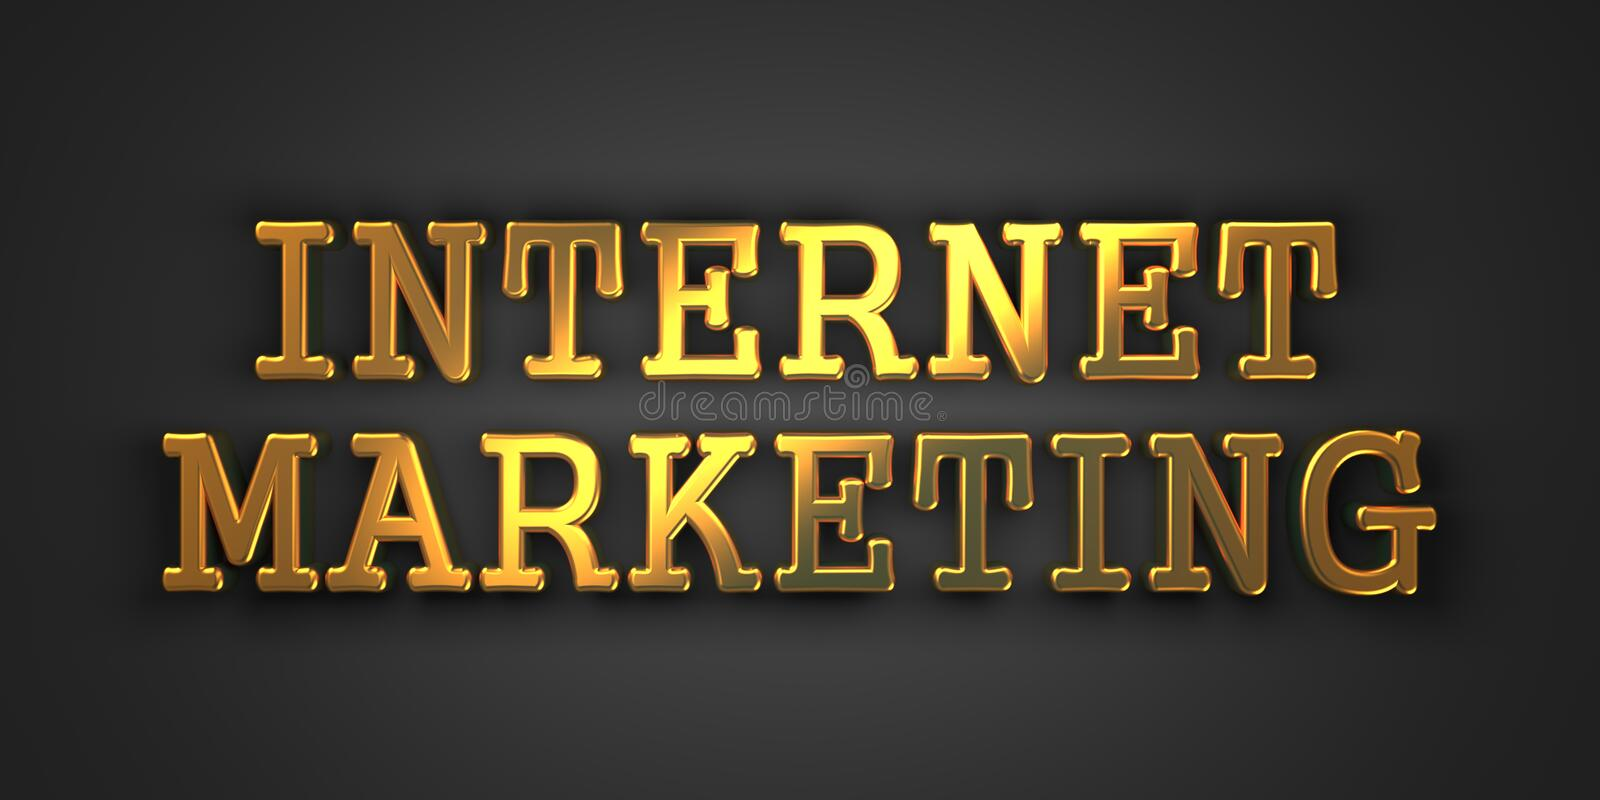 Internet-Marketing. Bedrijfsconcept. royalty-vrije stock afbeelding